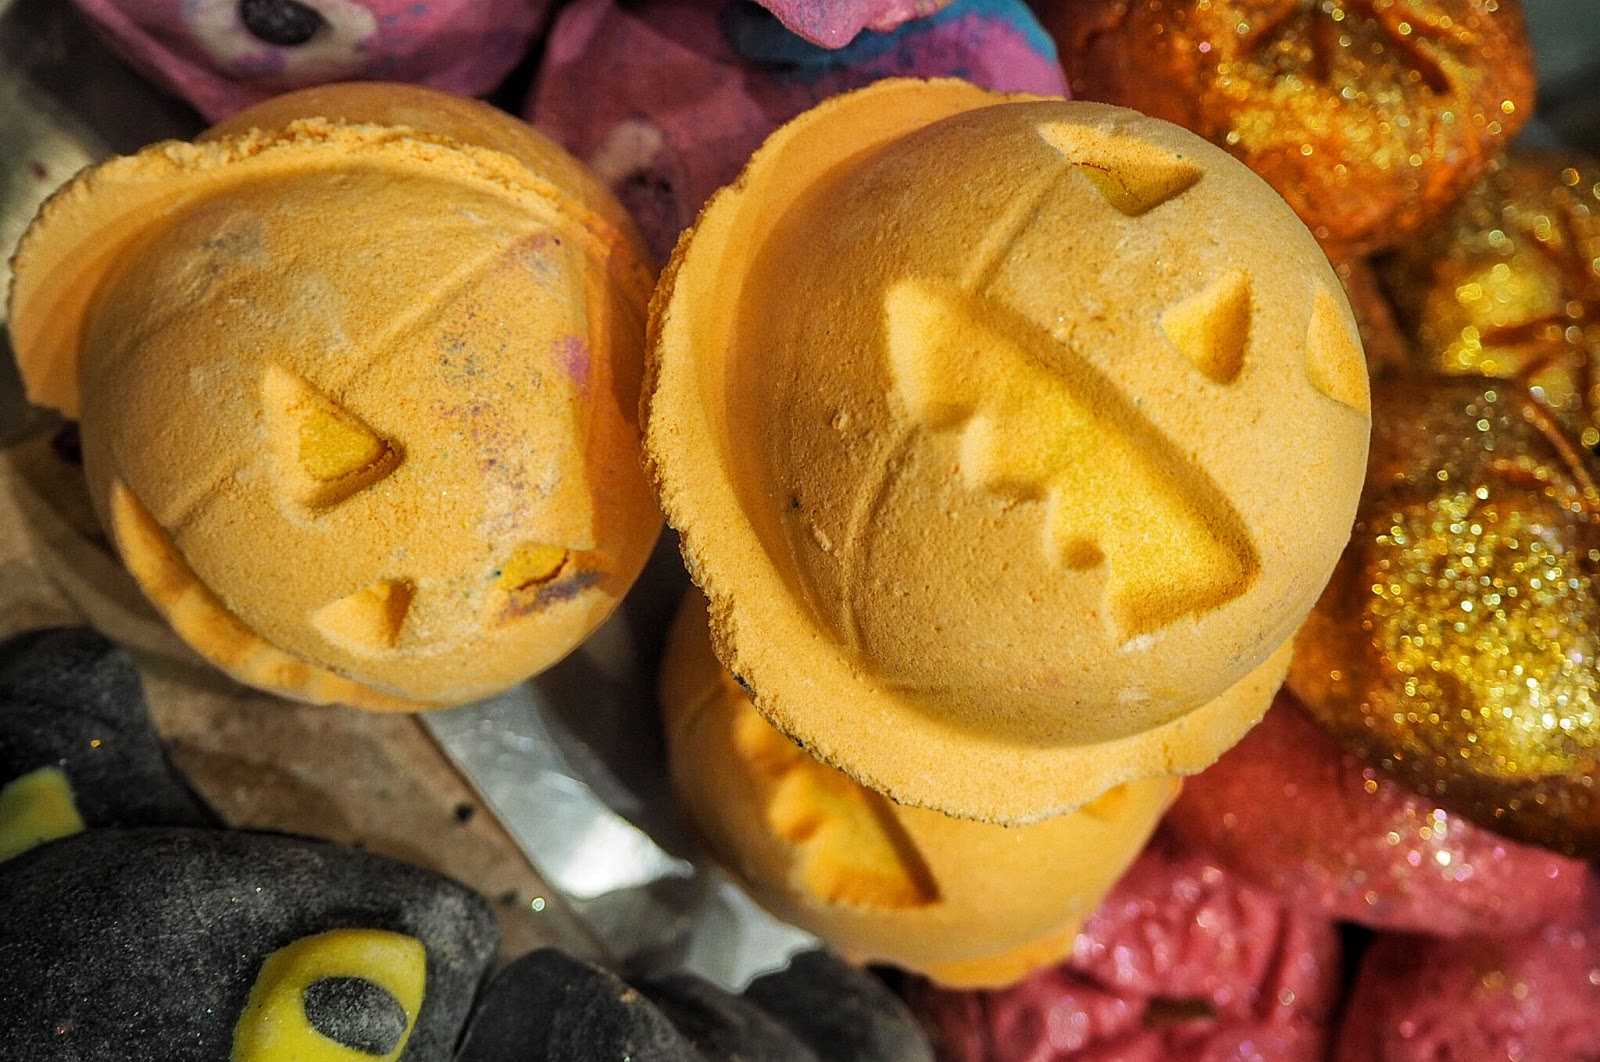 Lush, Halloween, 2017, Bath bombs, Bubble Bars, Autumn, Pumpkin